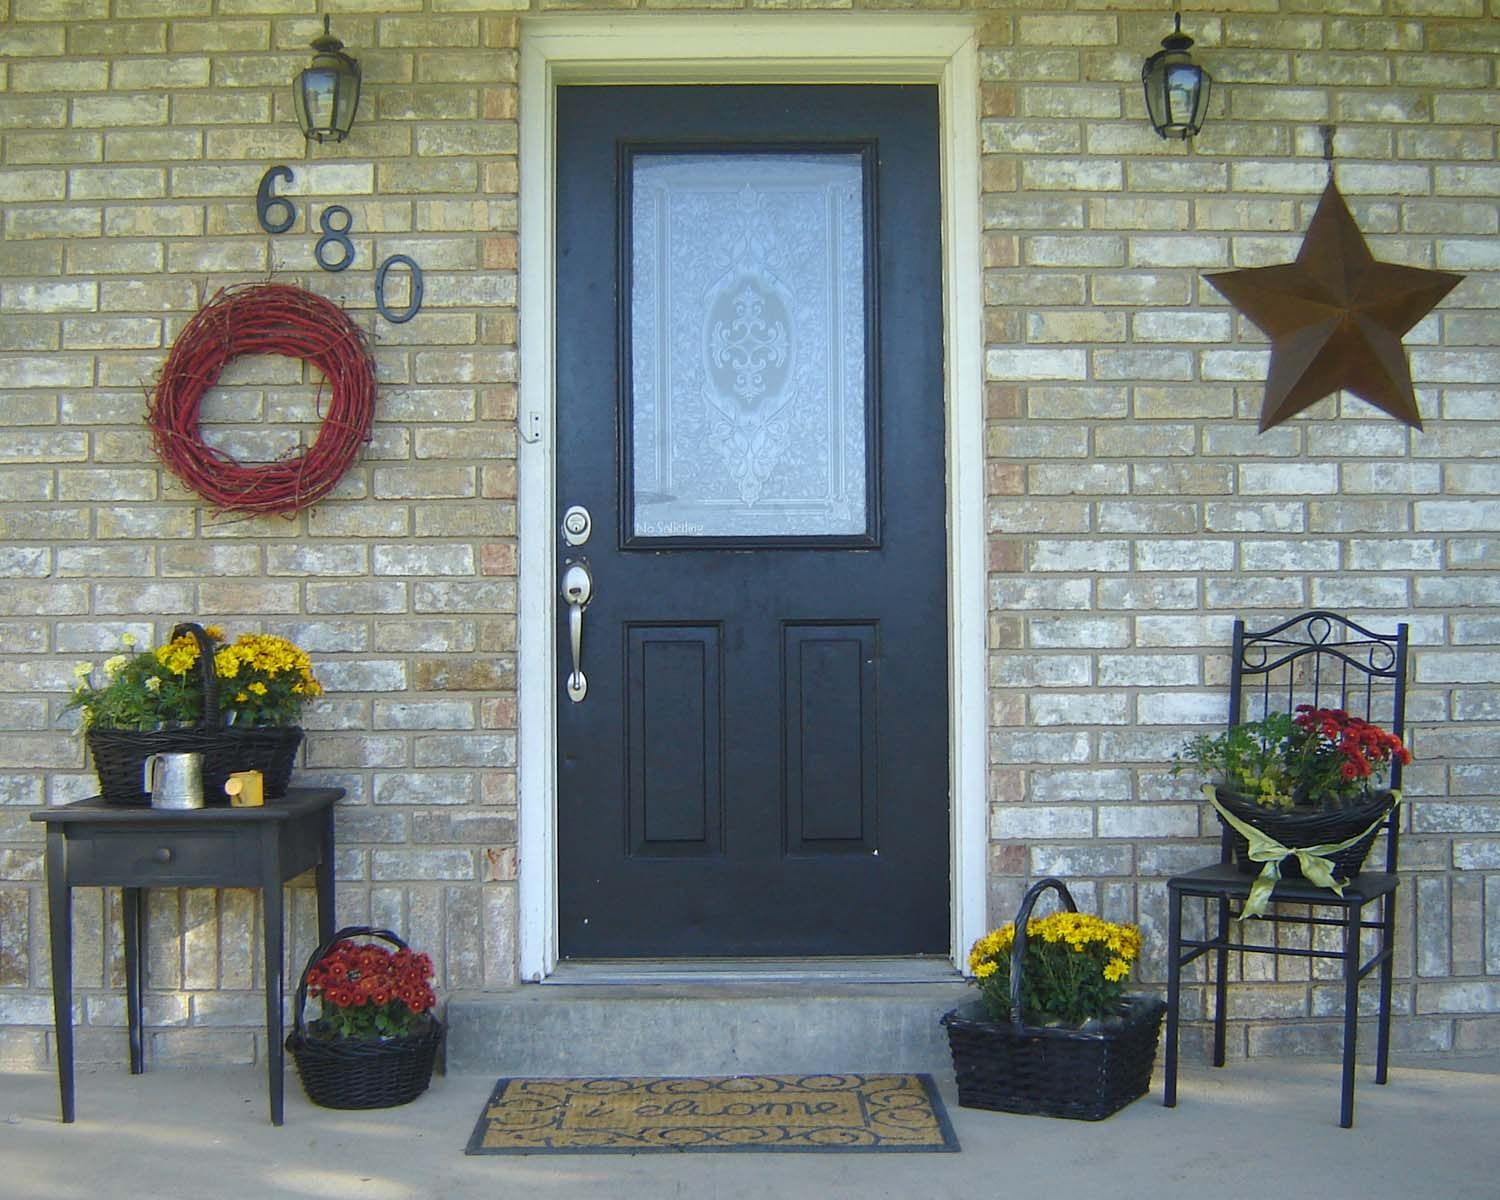 Porch decorating ideas home updates pinterest porch for Front porch plans free